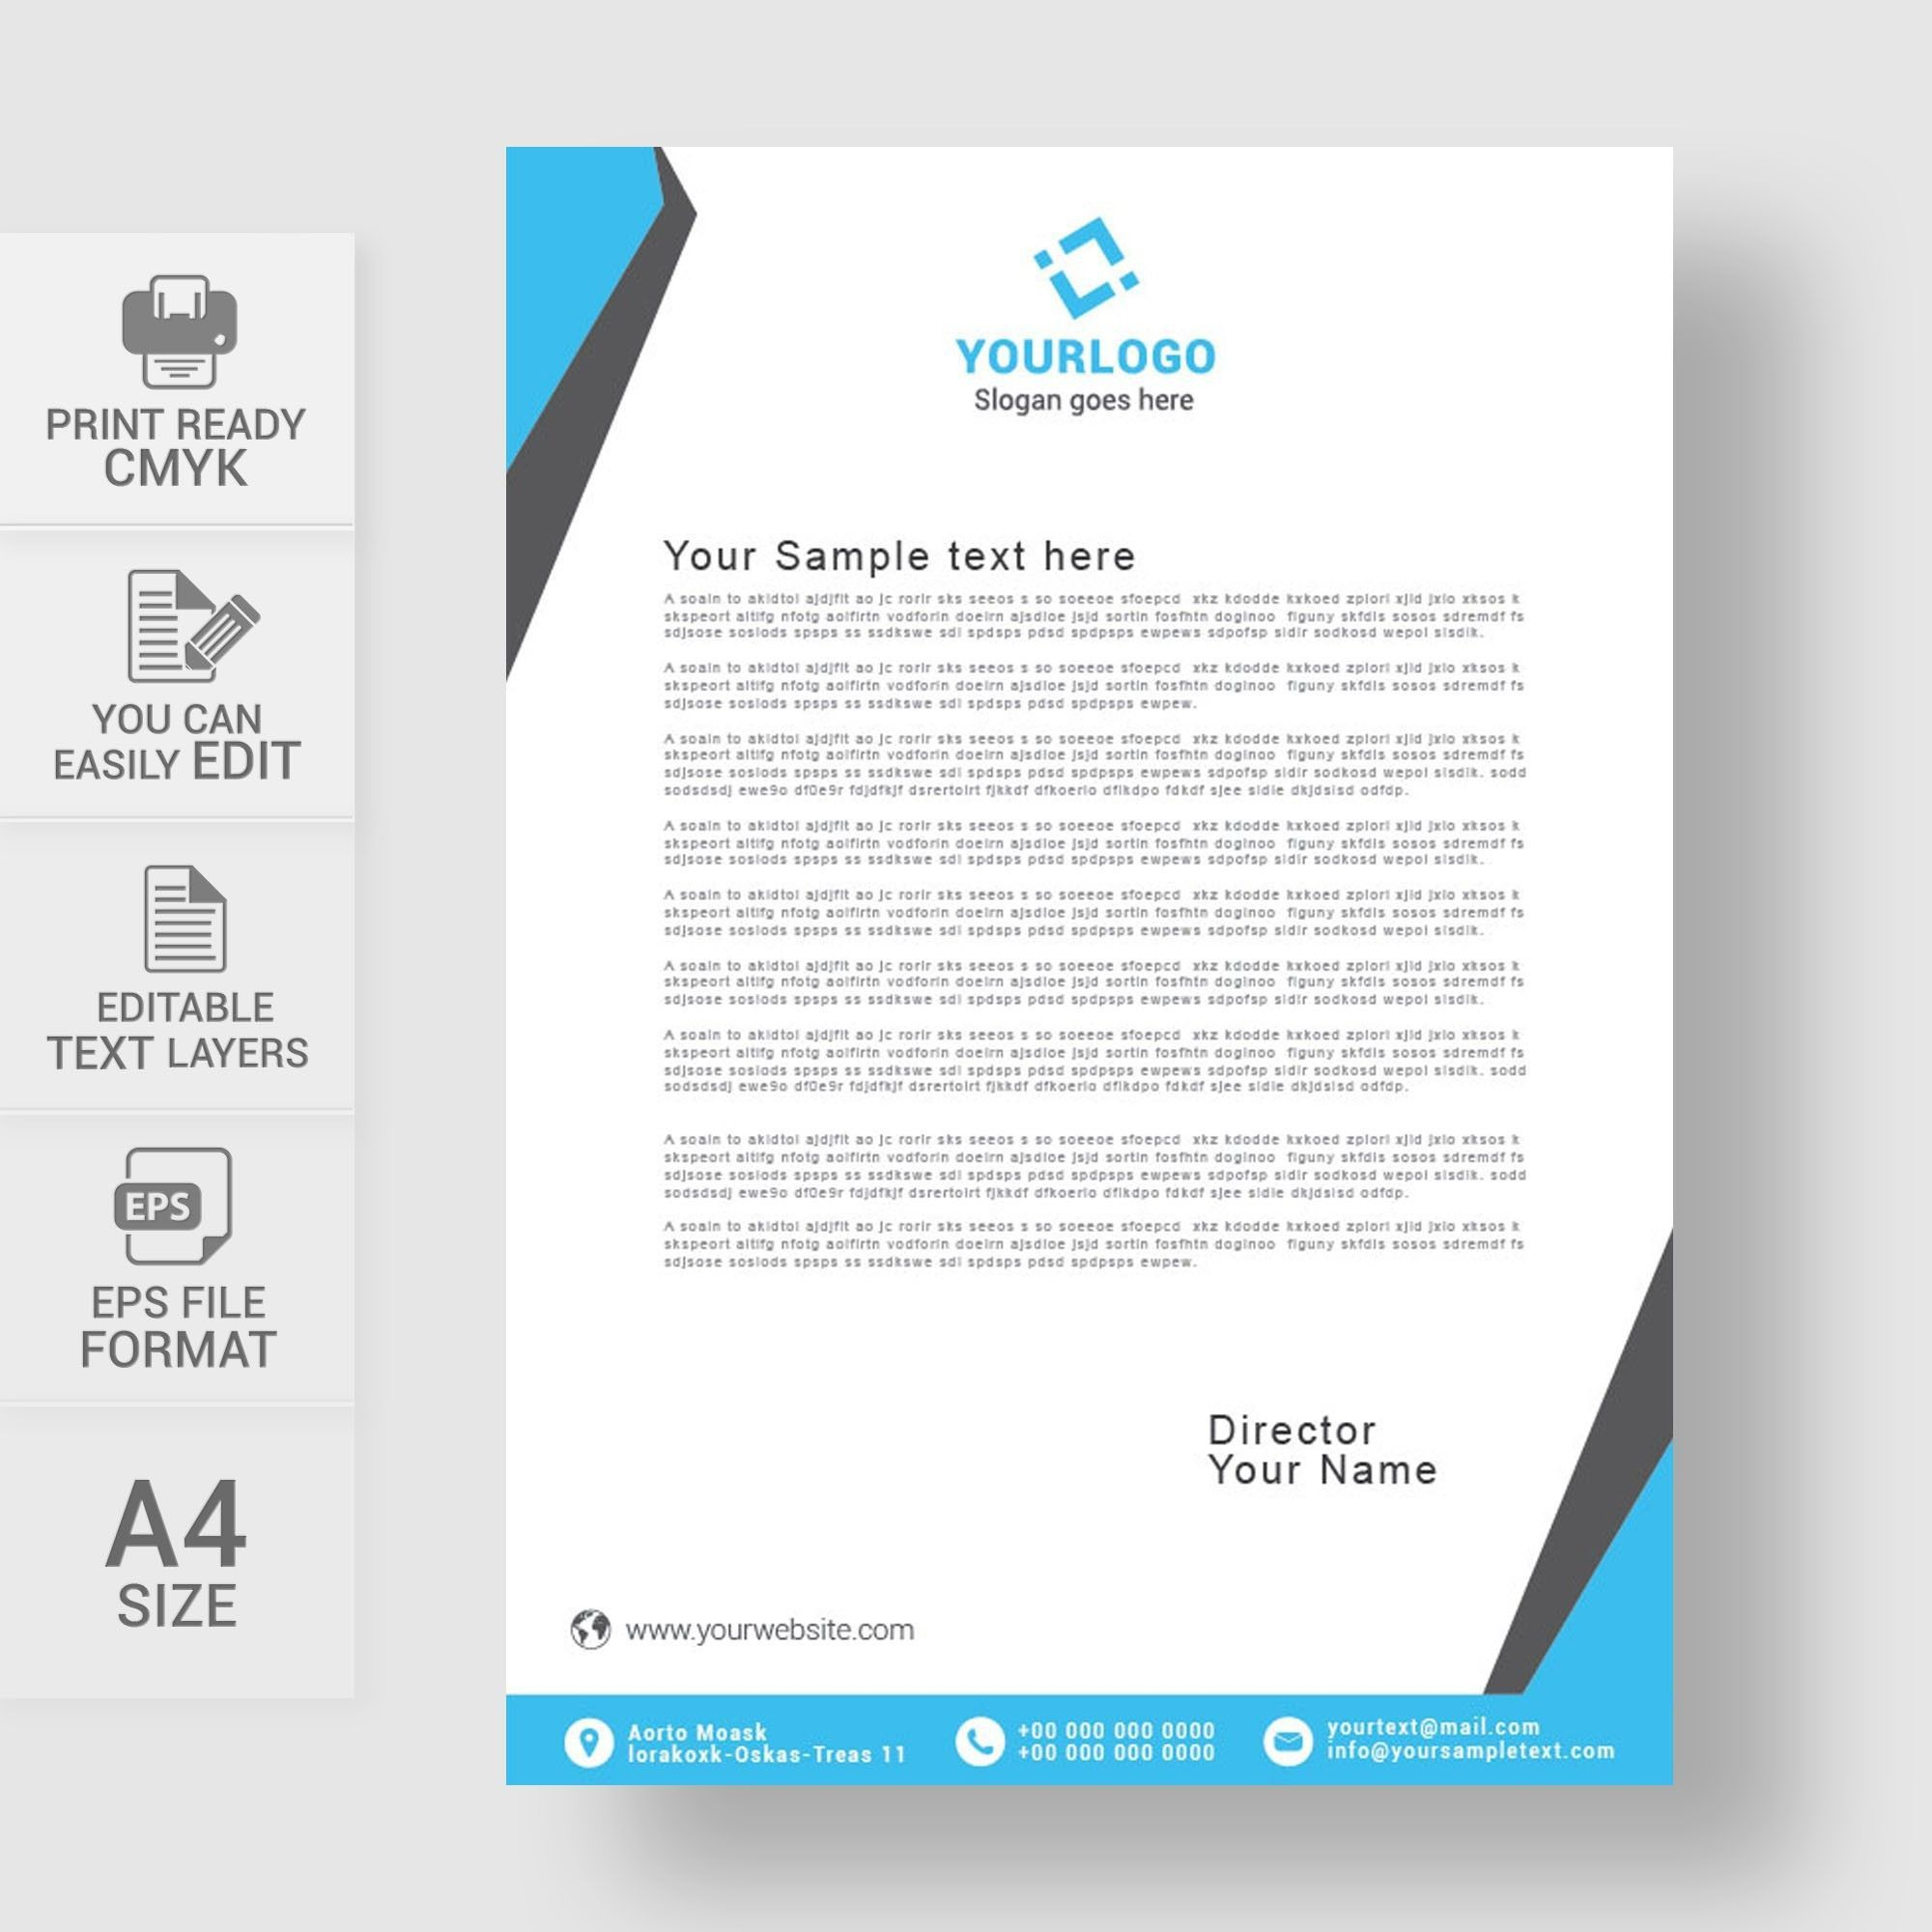 003 Unusual Letterhead Example Free Download Photo  Advocate Format Hospital In Word PdfFull